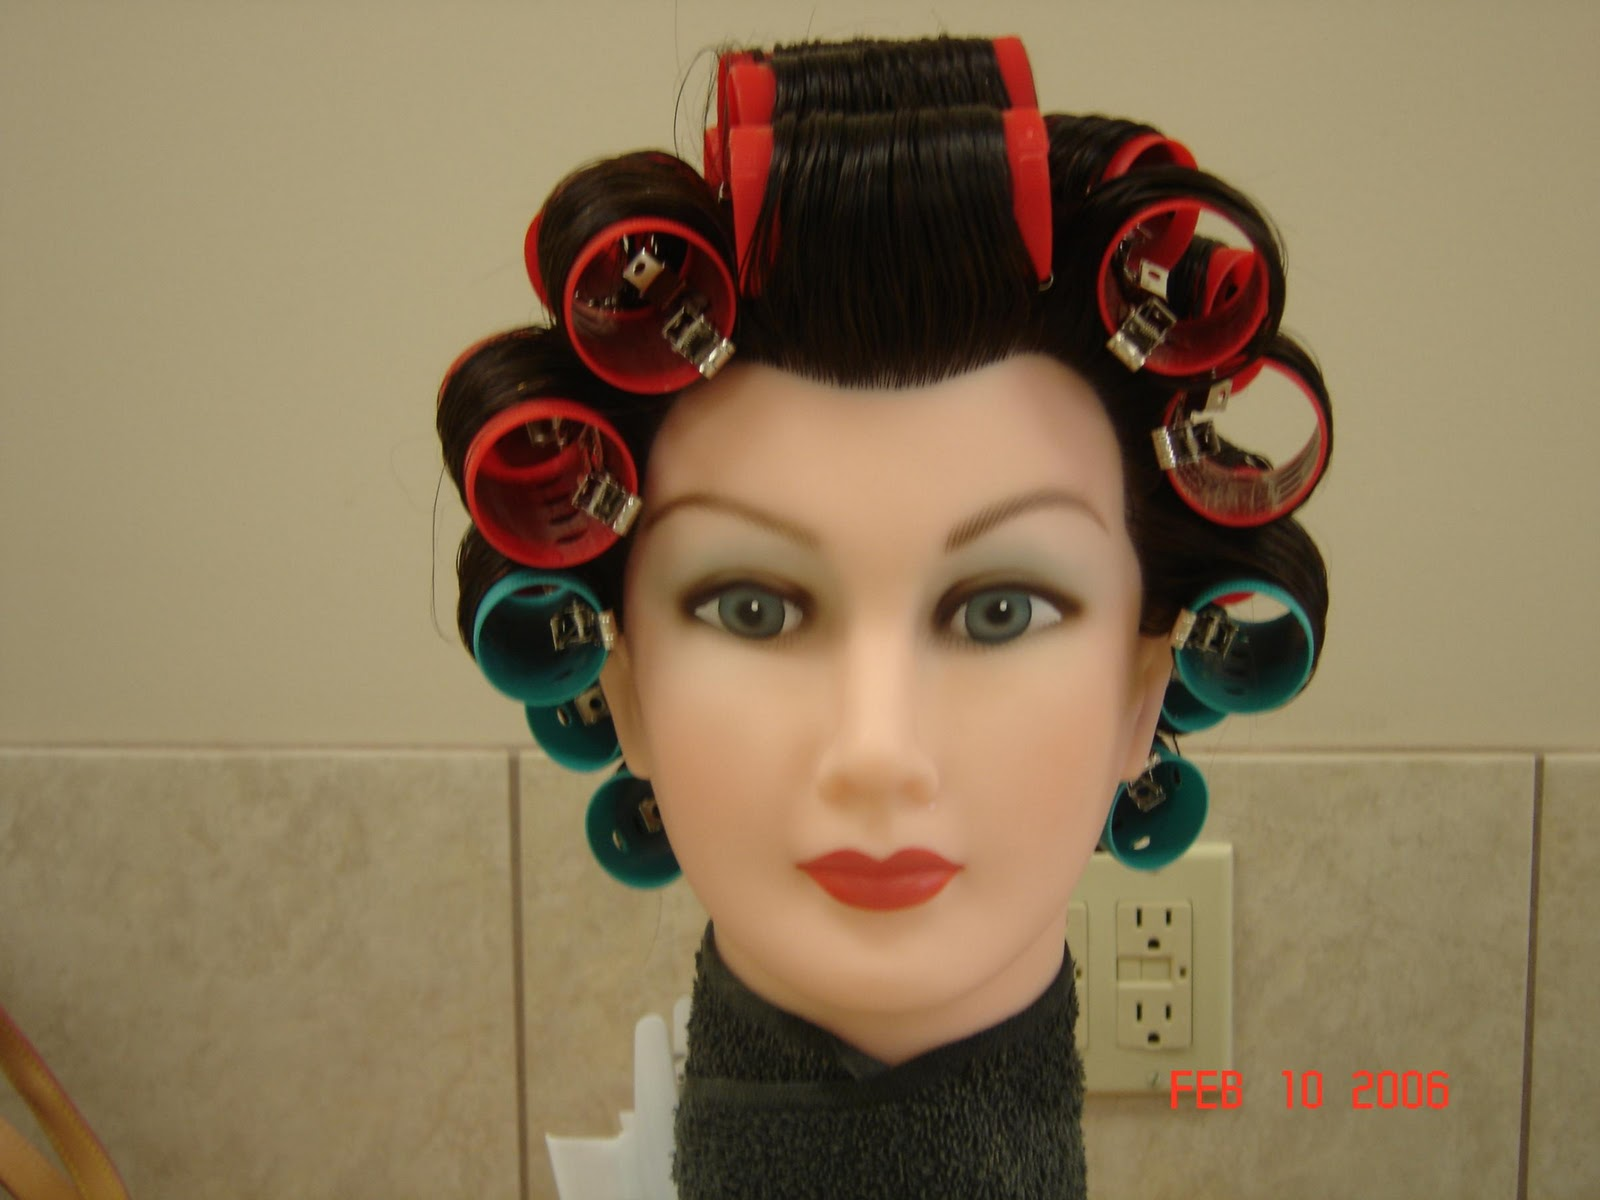 Roller Set in Hair Salon http://toya-j-intrest.blogspot.com/2010/12/little-extra-bounce-to-my-hair.html